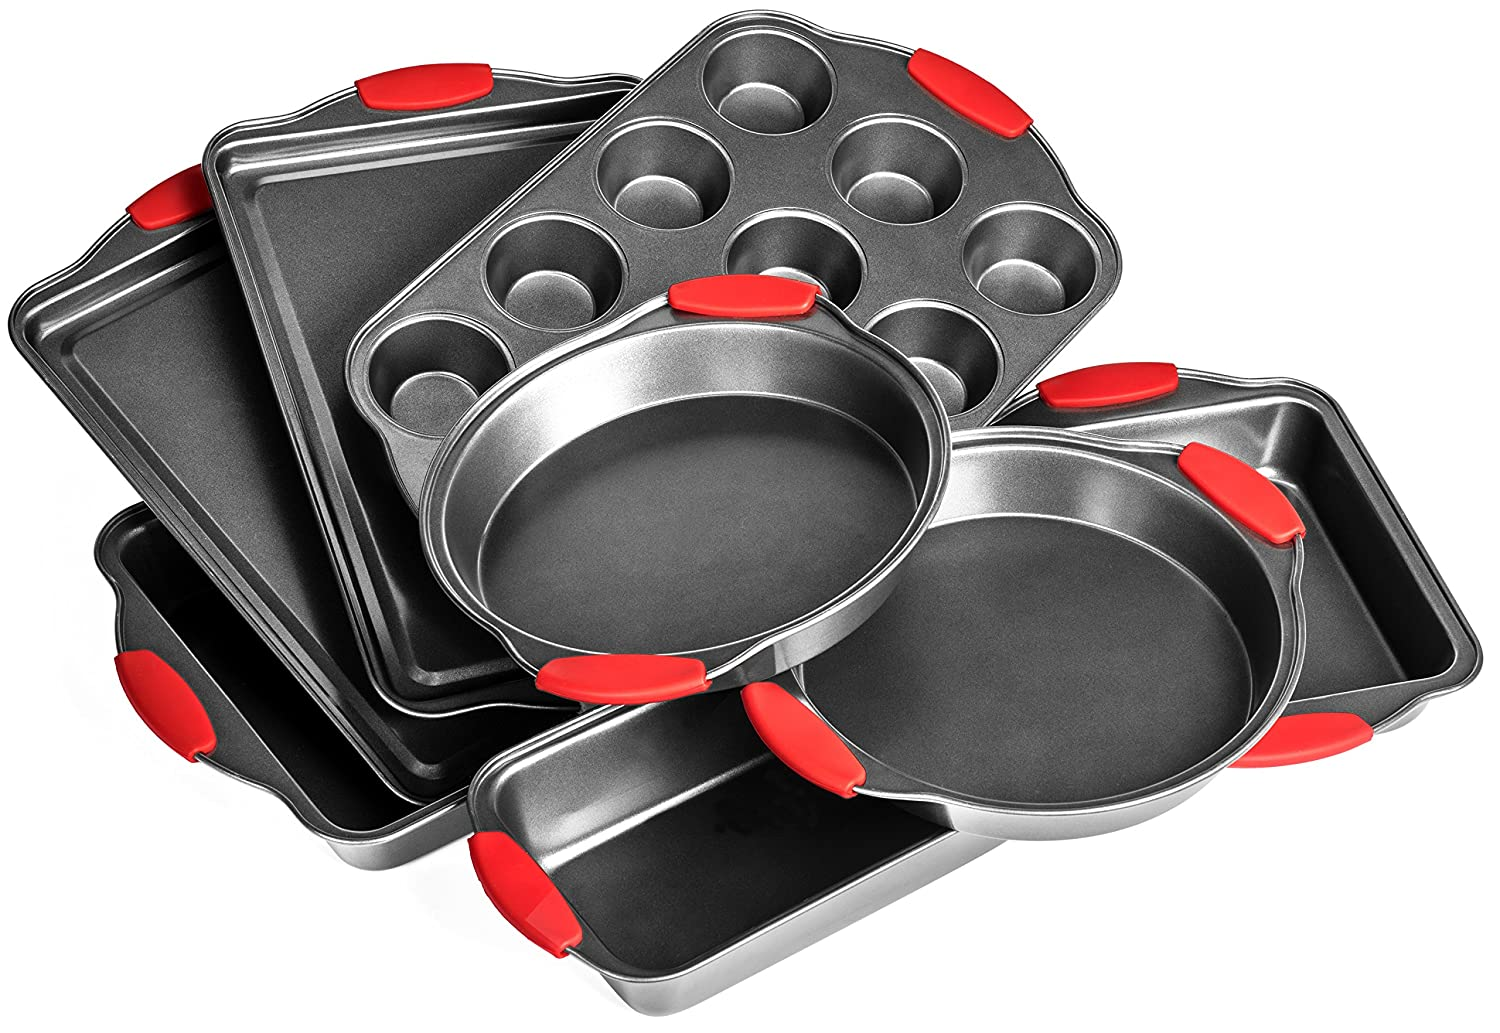 Elite Bakeware 8 Piece Ultra NonStick Baking Pans Set - Bakeware Set - Cookware Set SYNCHKG106630